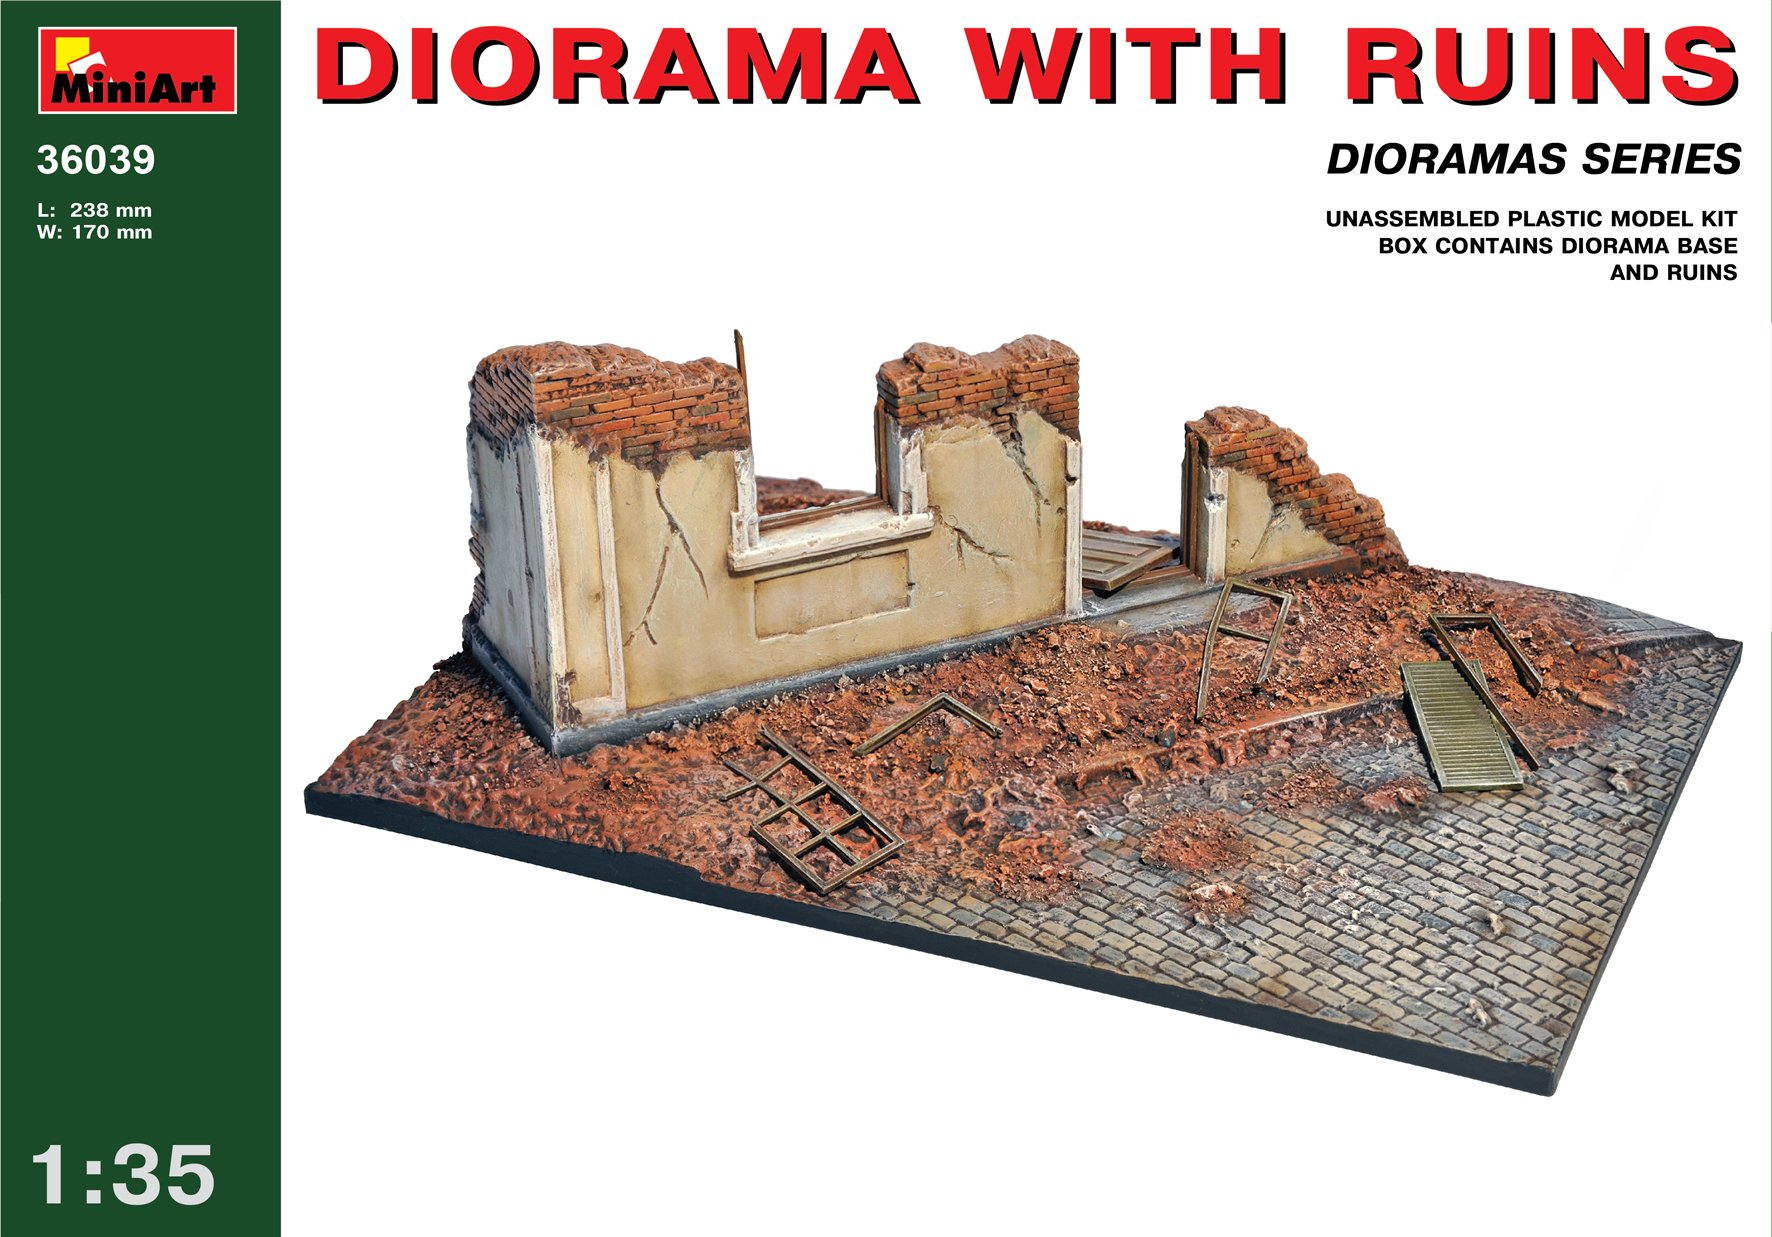 MiniArt 1:35 Scale Diorama with Ruins Plastic Model Kit